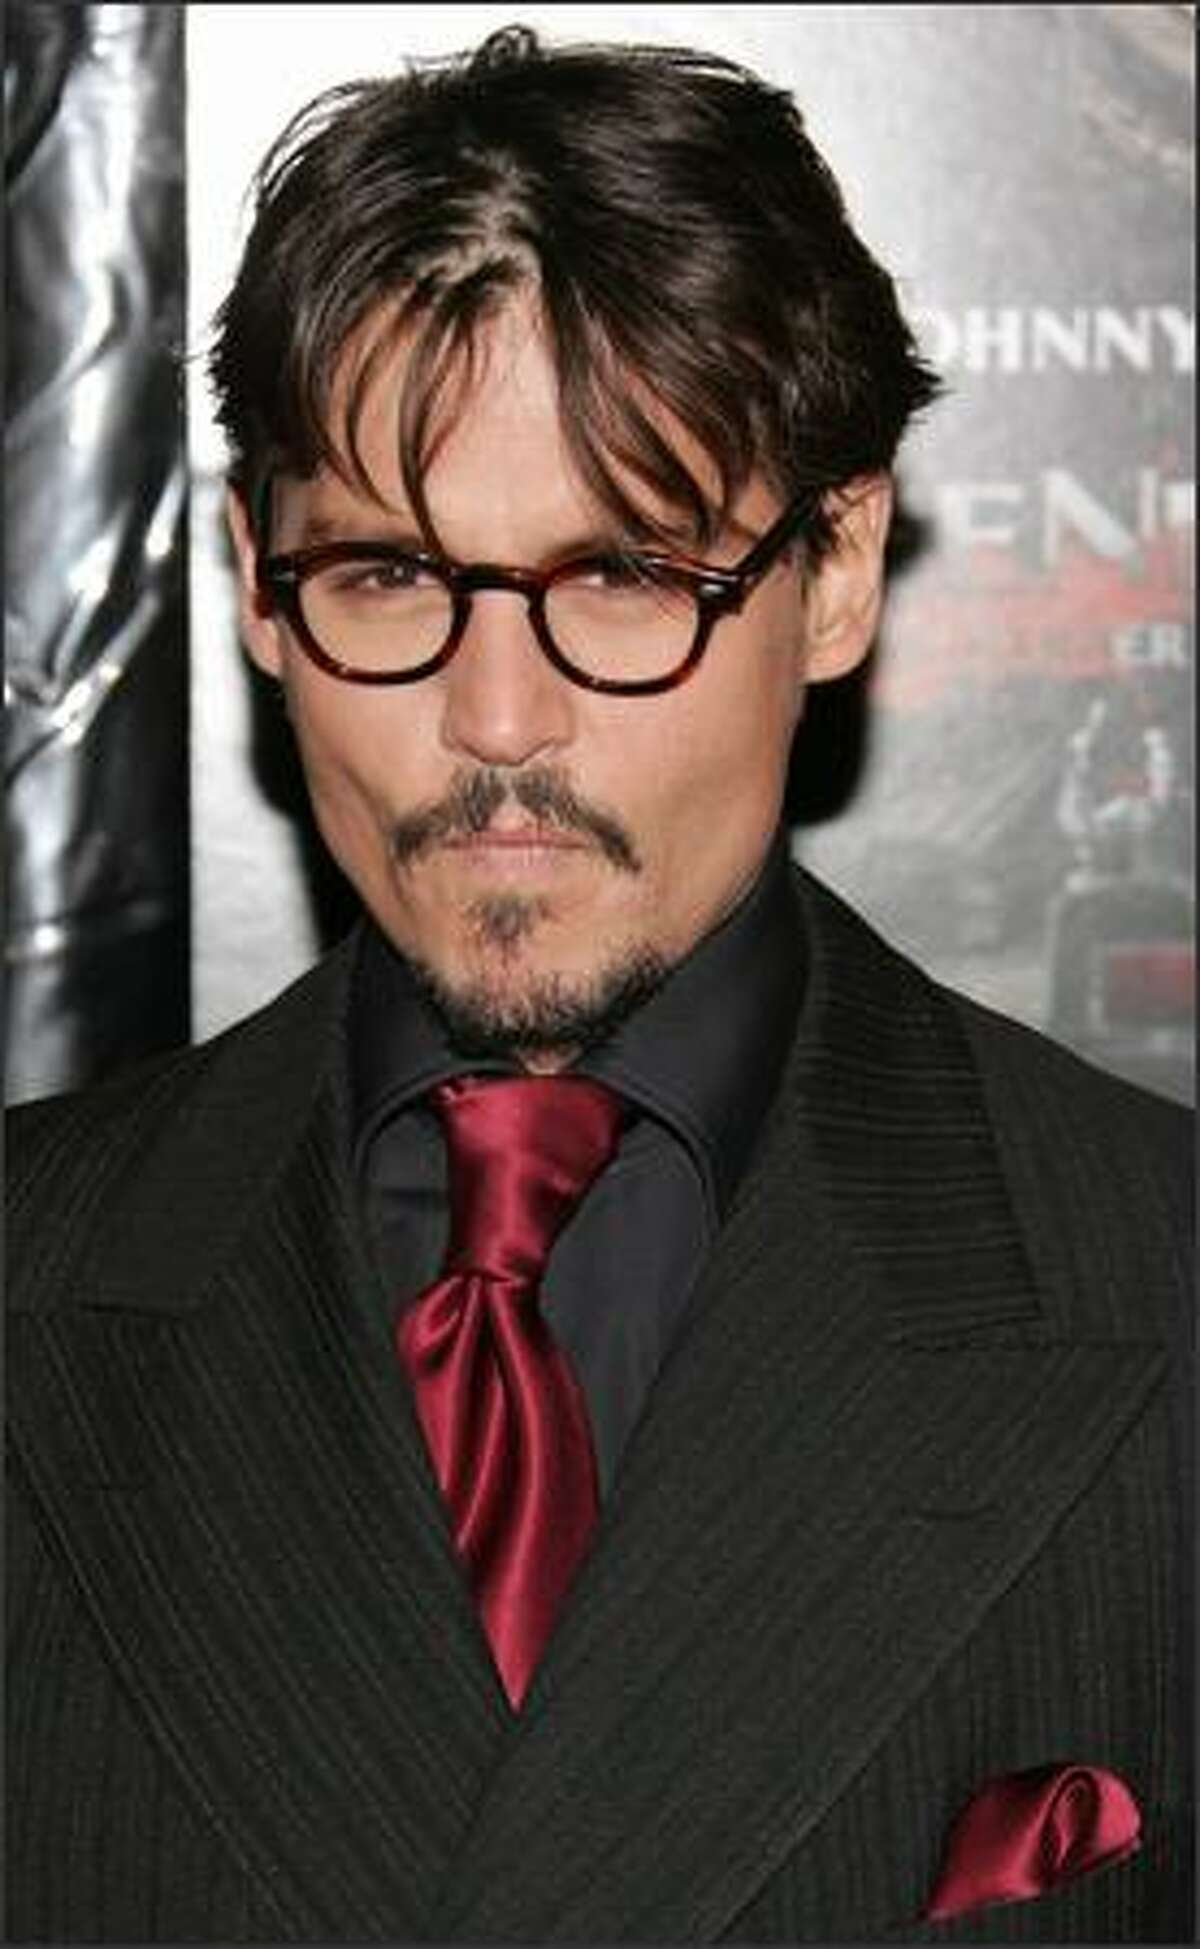 Actor Johnny Depp attends the New York premiere of